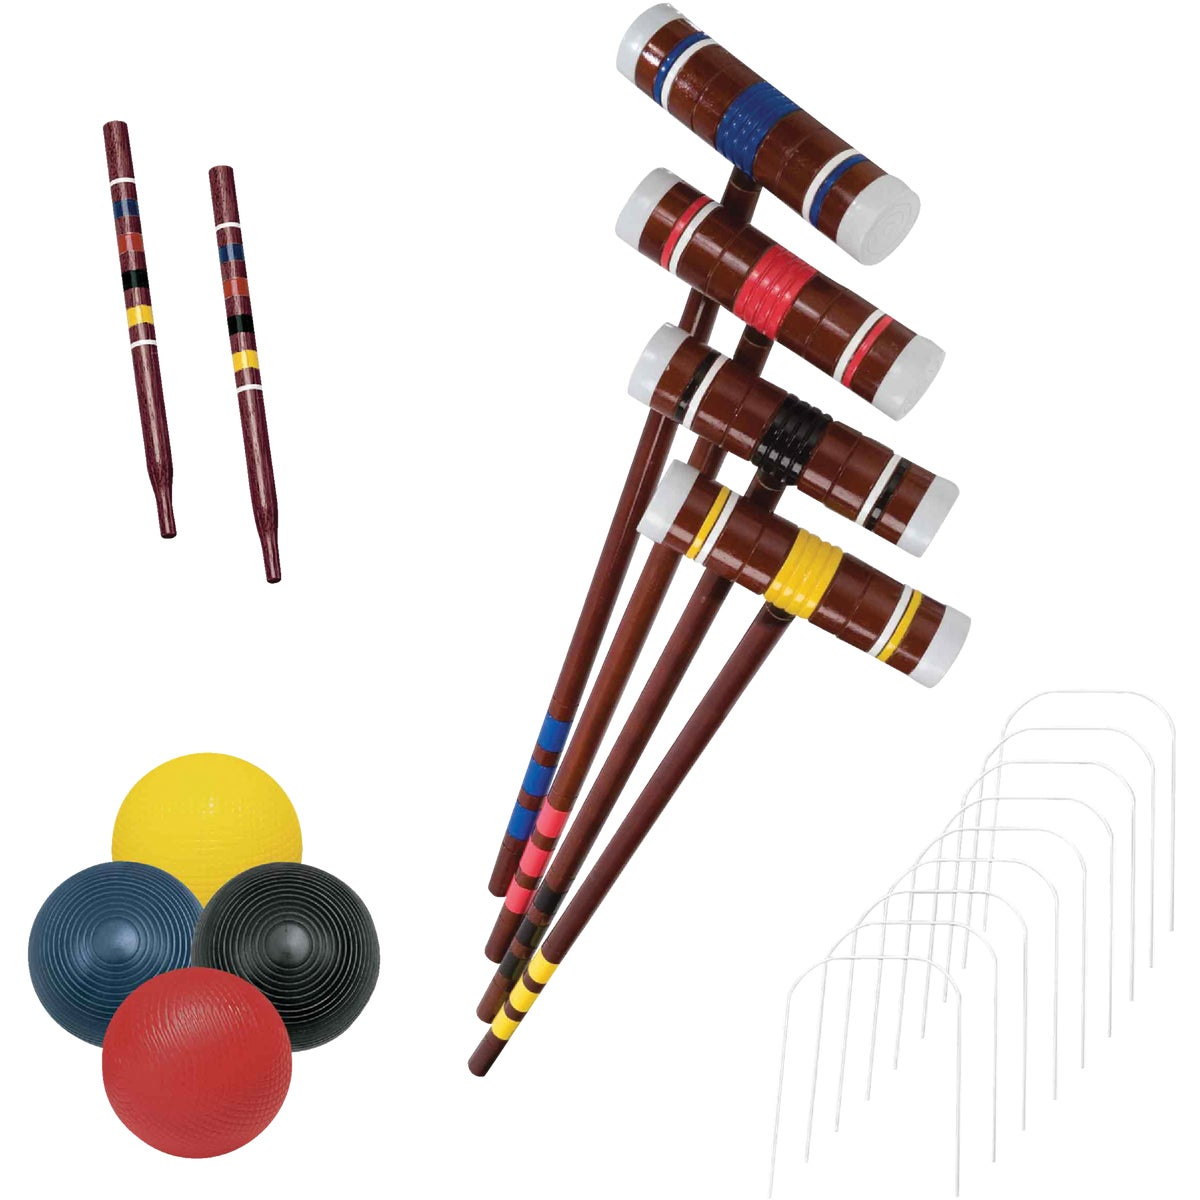 4-PLAYER CROQUET SET - 50200 by Franklin Sports